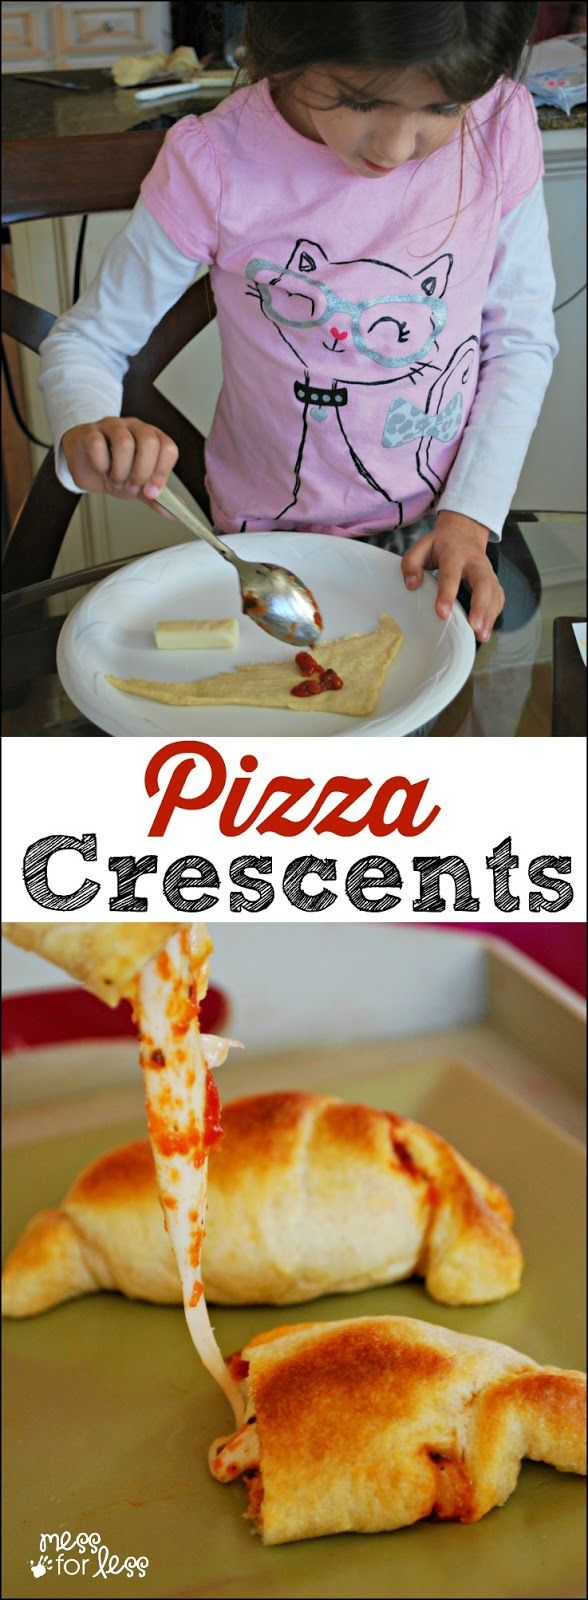 Crescent Roll Recipes: Pizza Crescents - these are the perfect after school snack for kids. So simple to make and SO delicious!